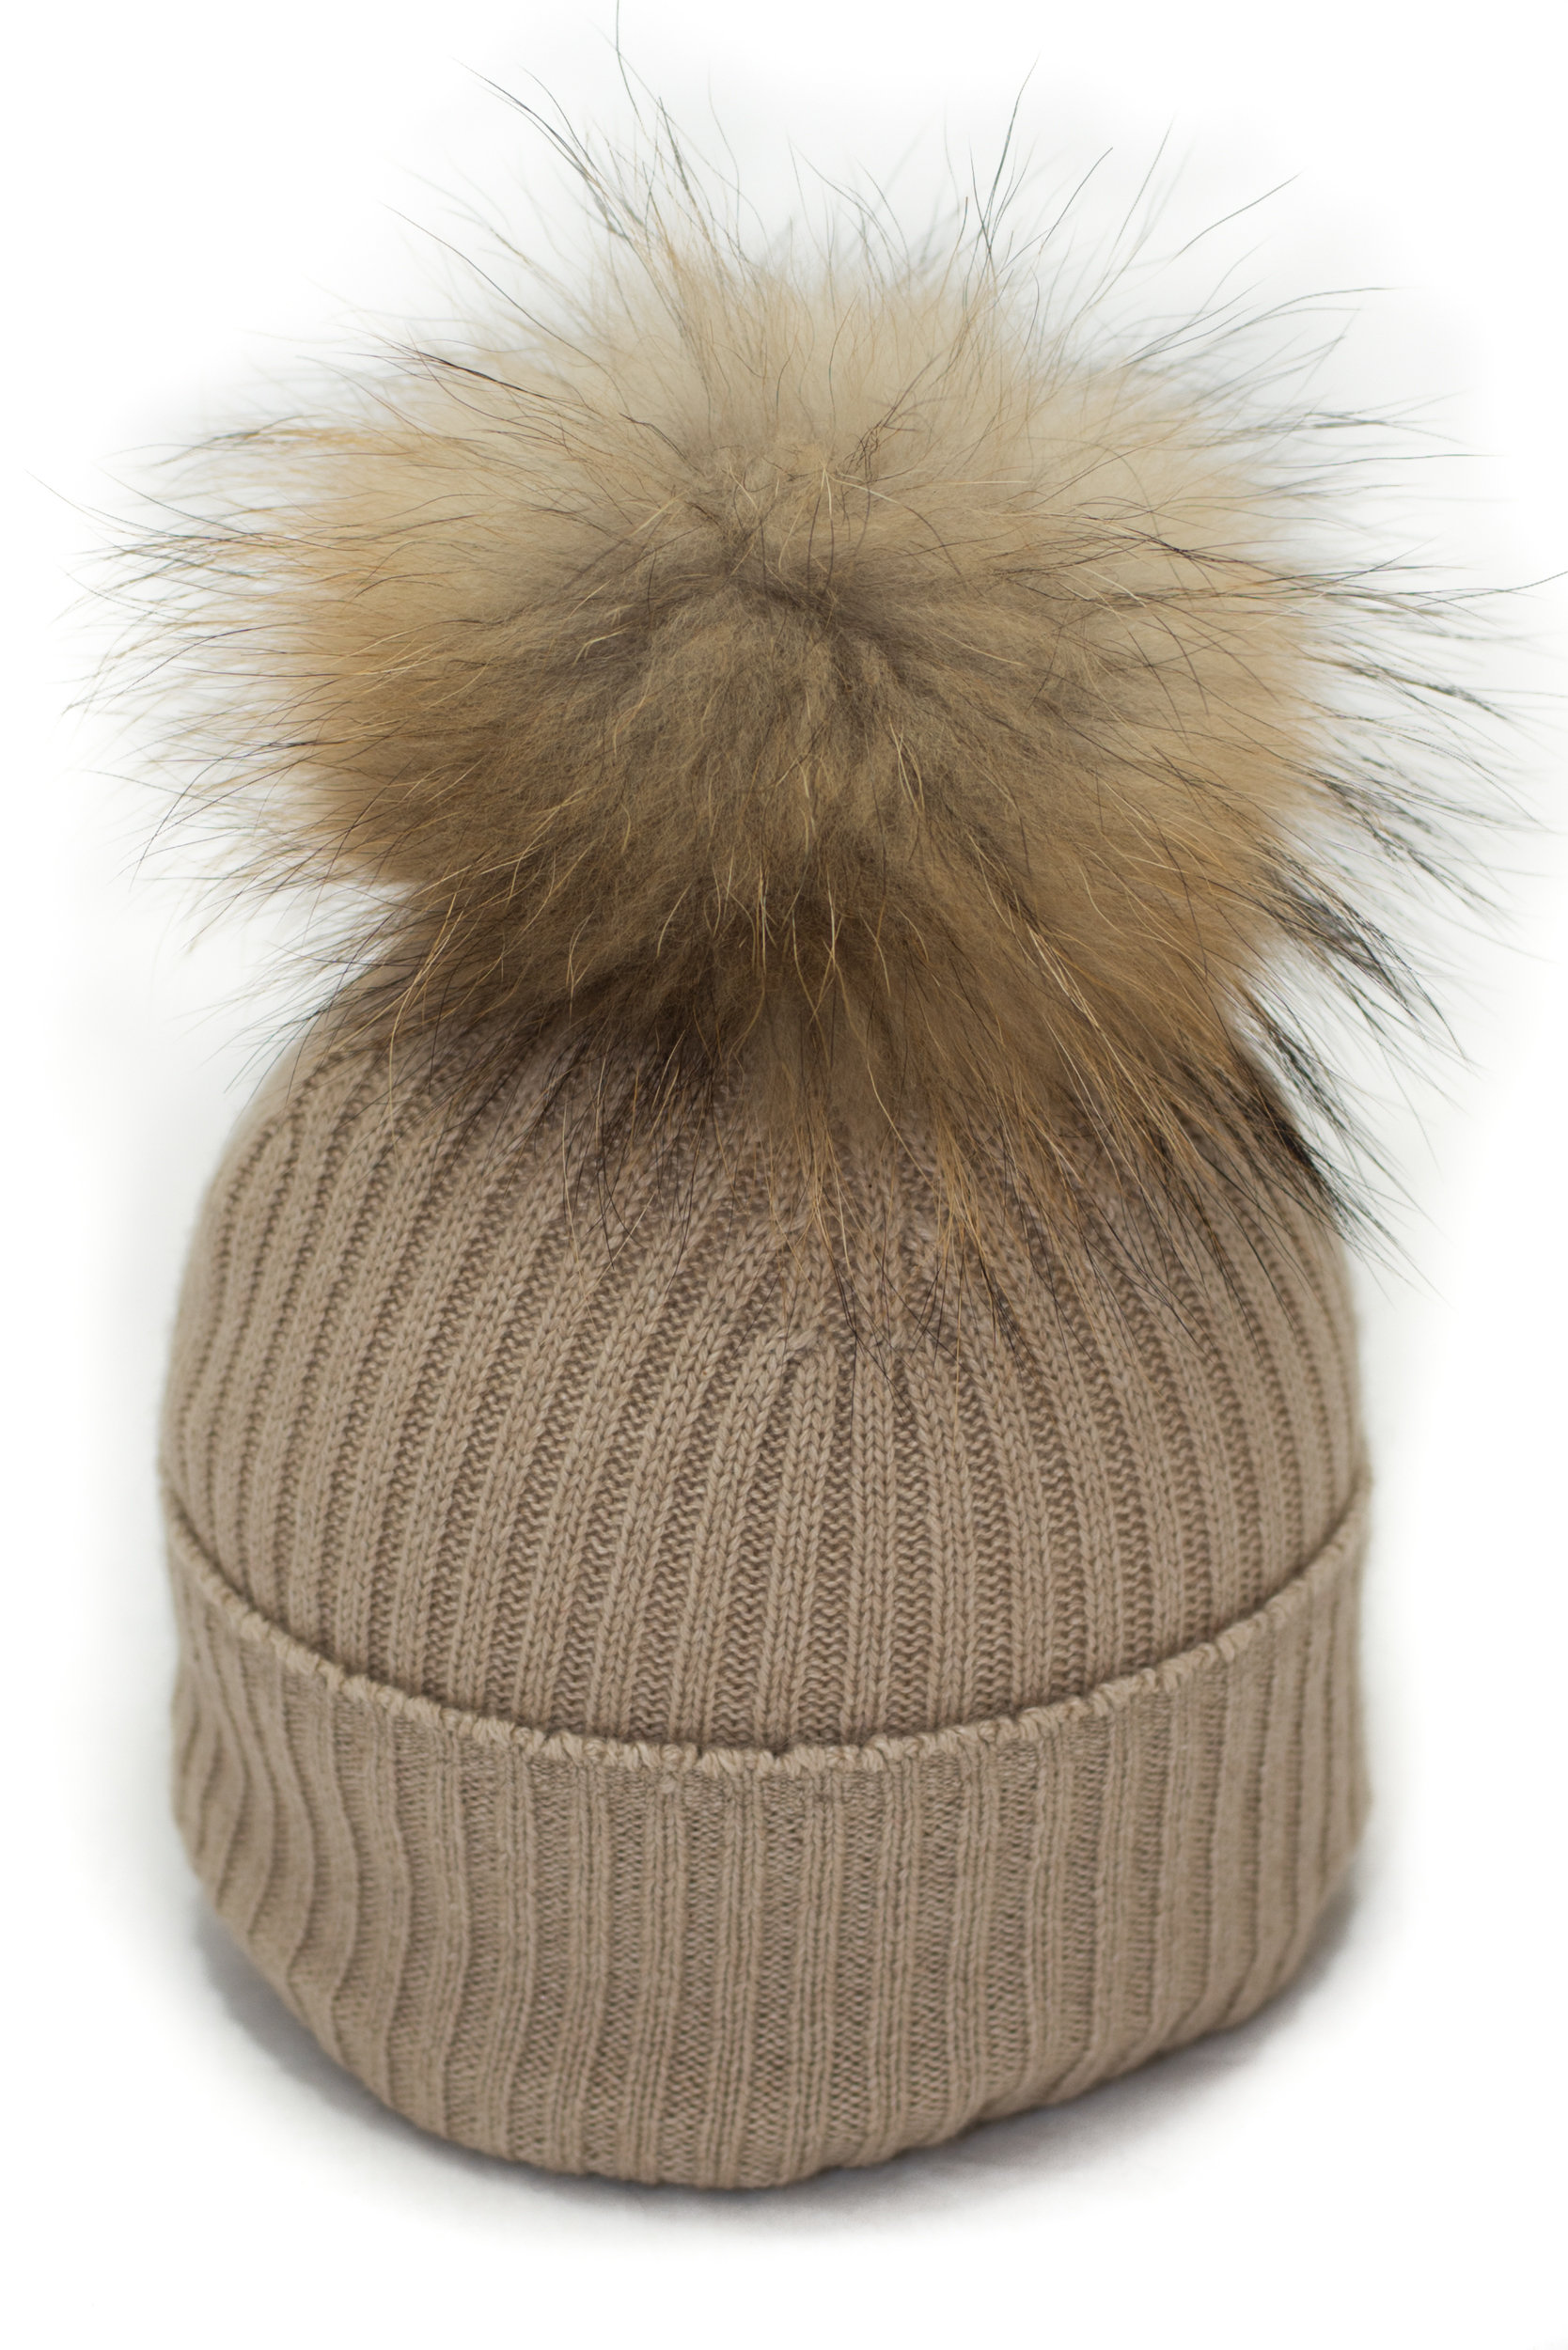 1a7d2e58 'Maddie' Hat - Beige - Natural Colour Pom